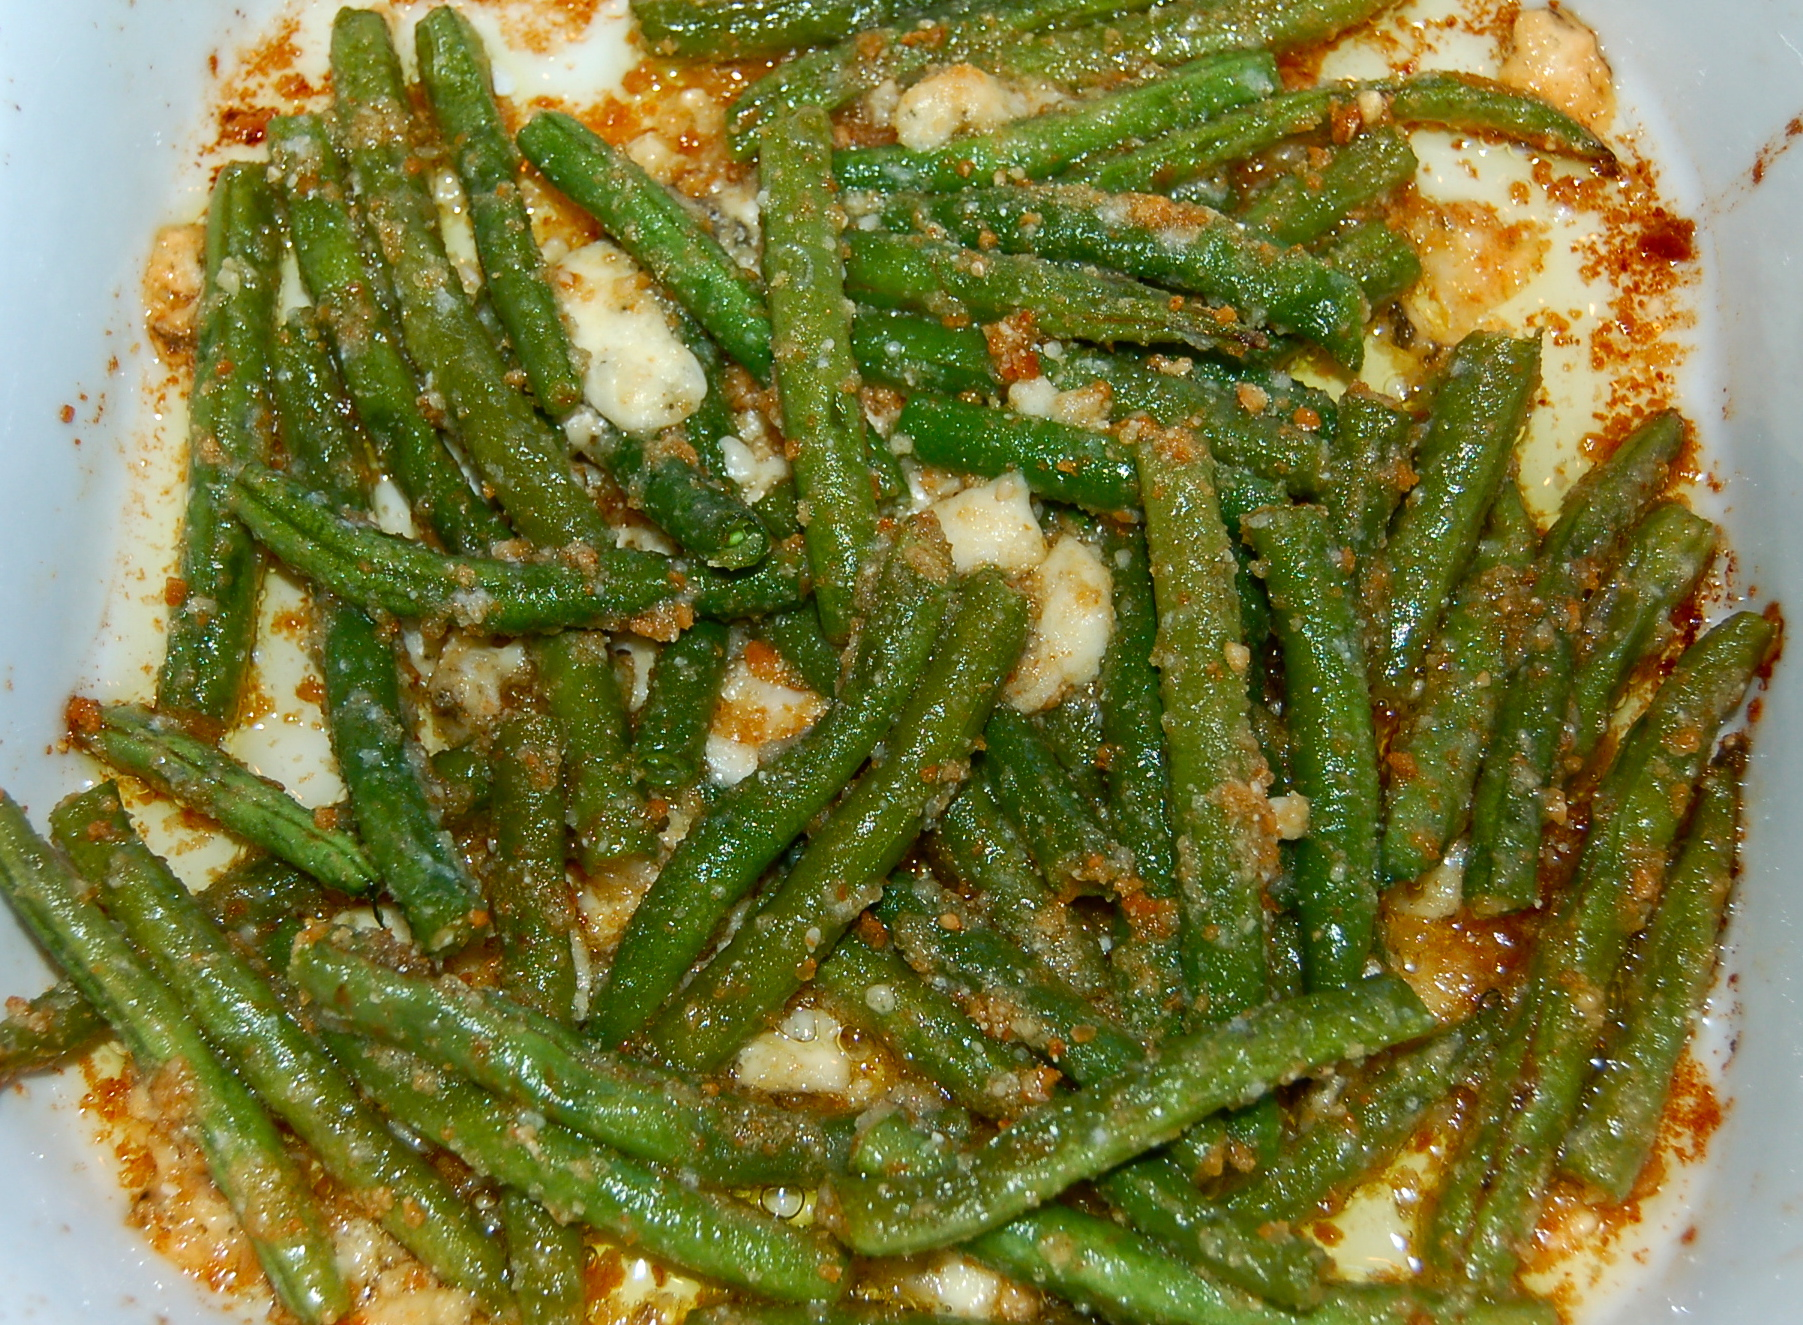 Green Beans With Parmesan Bread Crumbs Recipes — Dishmaps